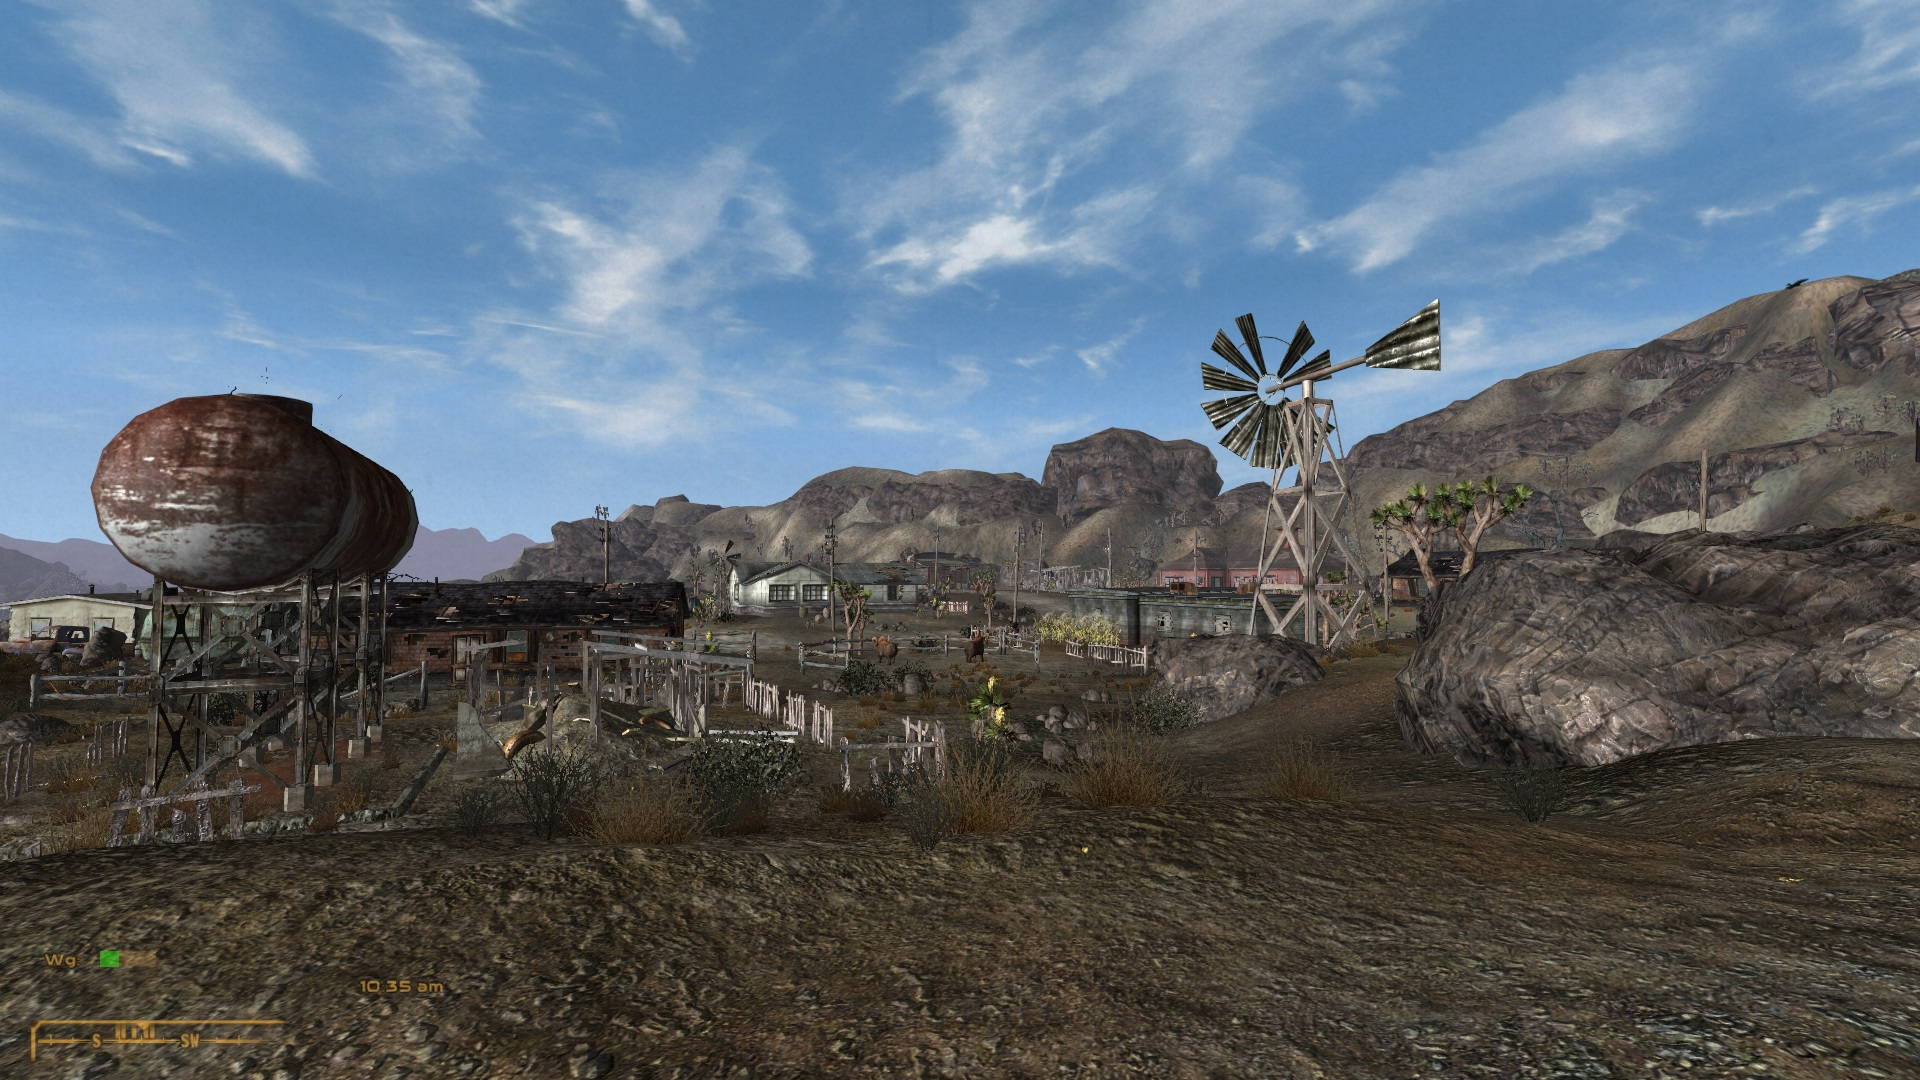 ENBSeries • View topic - Desaturation in Fallout New Vegas